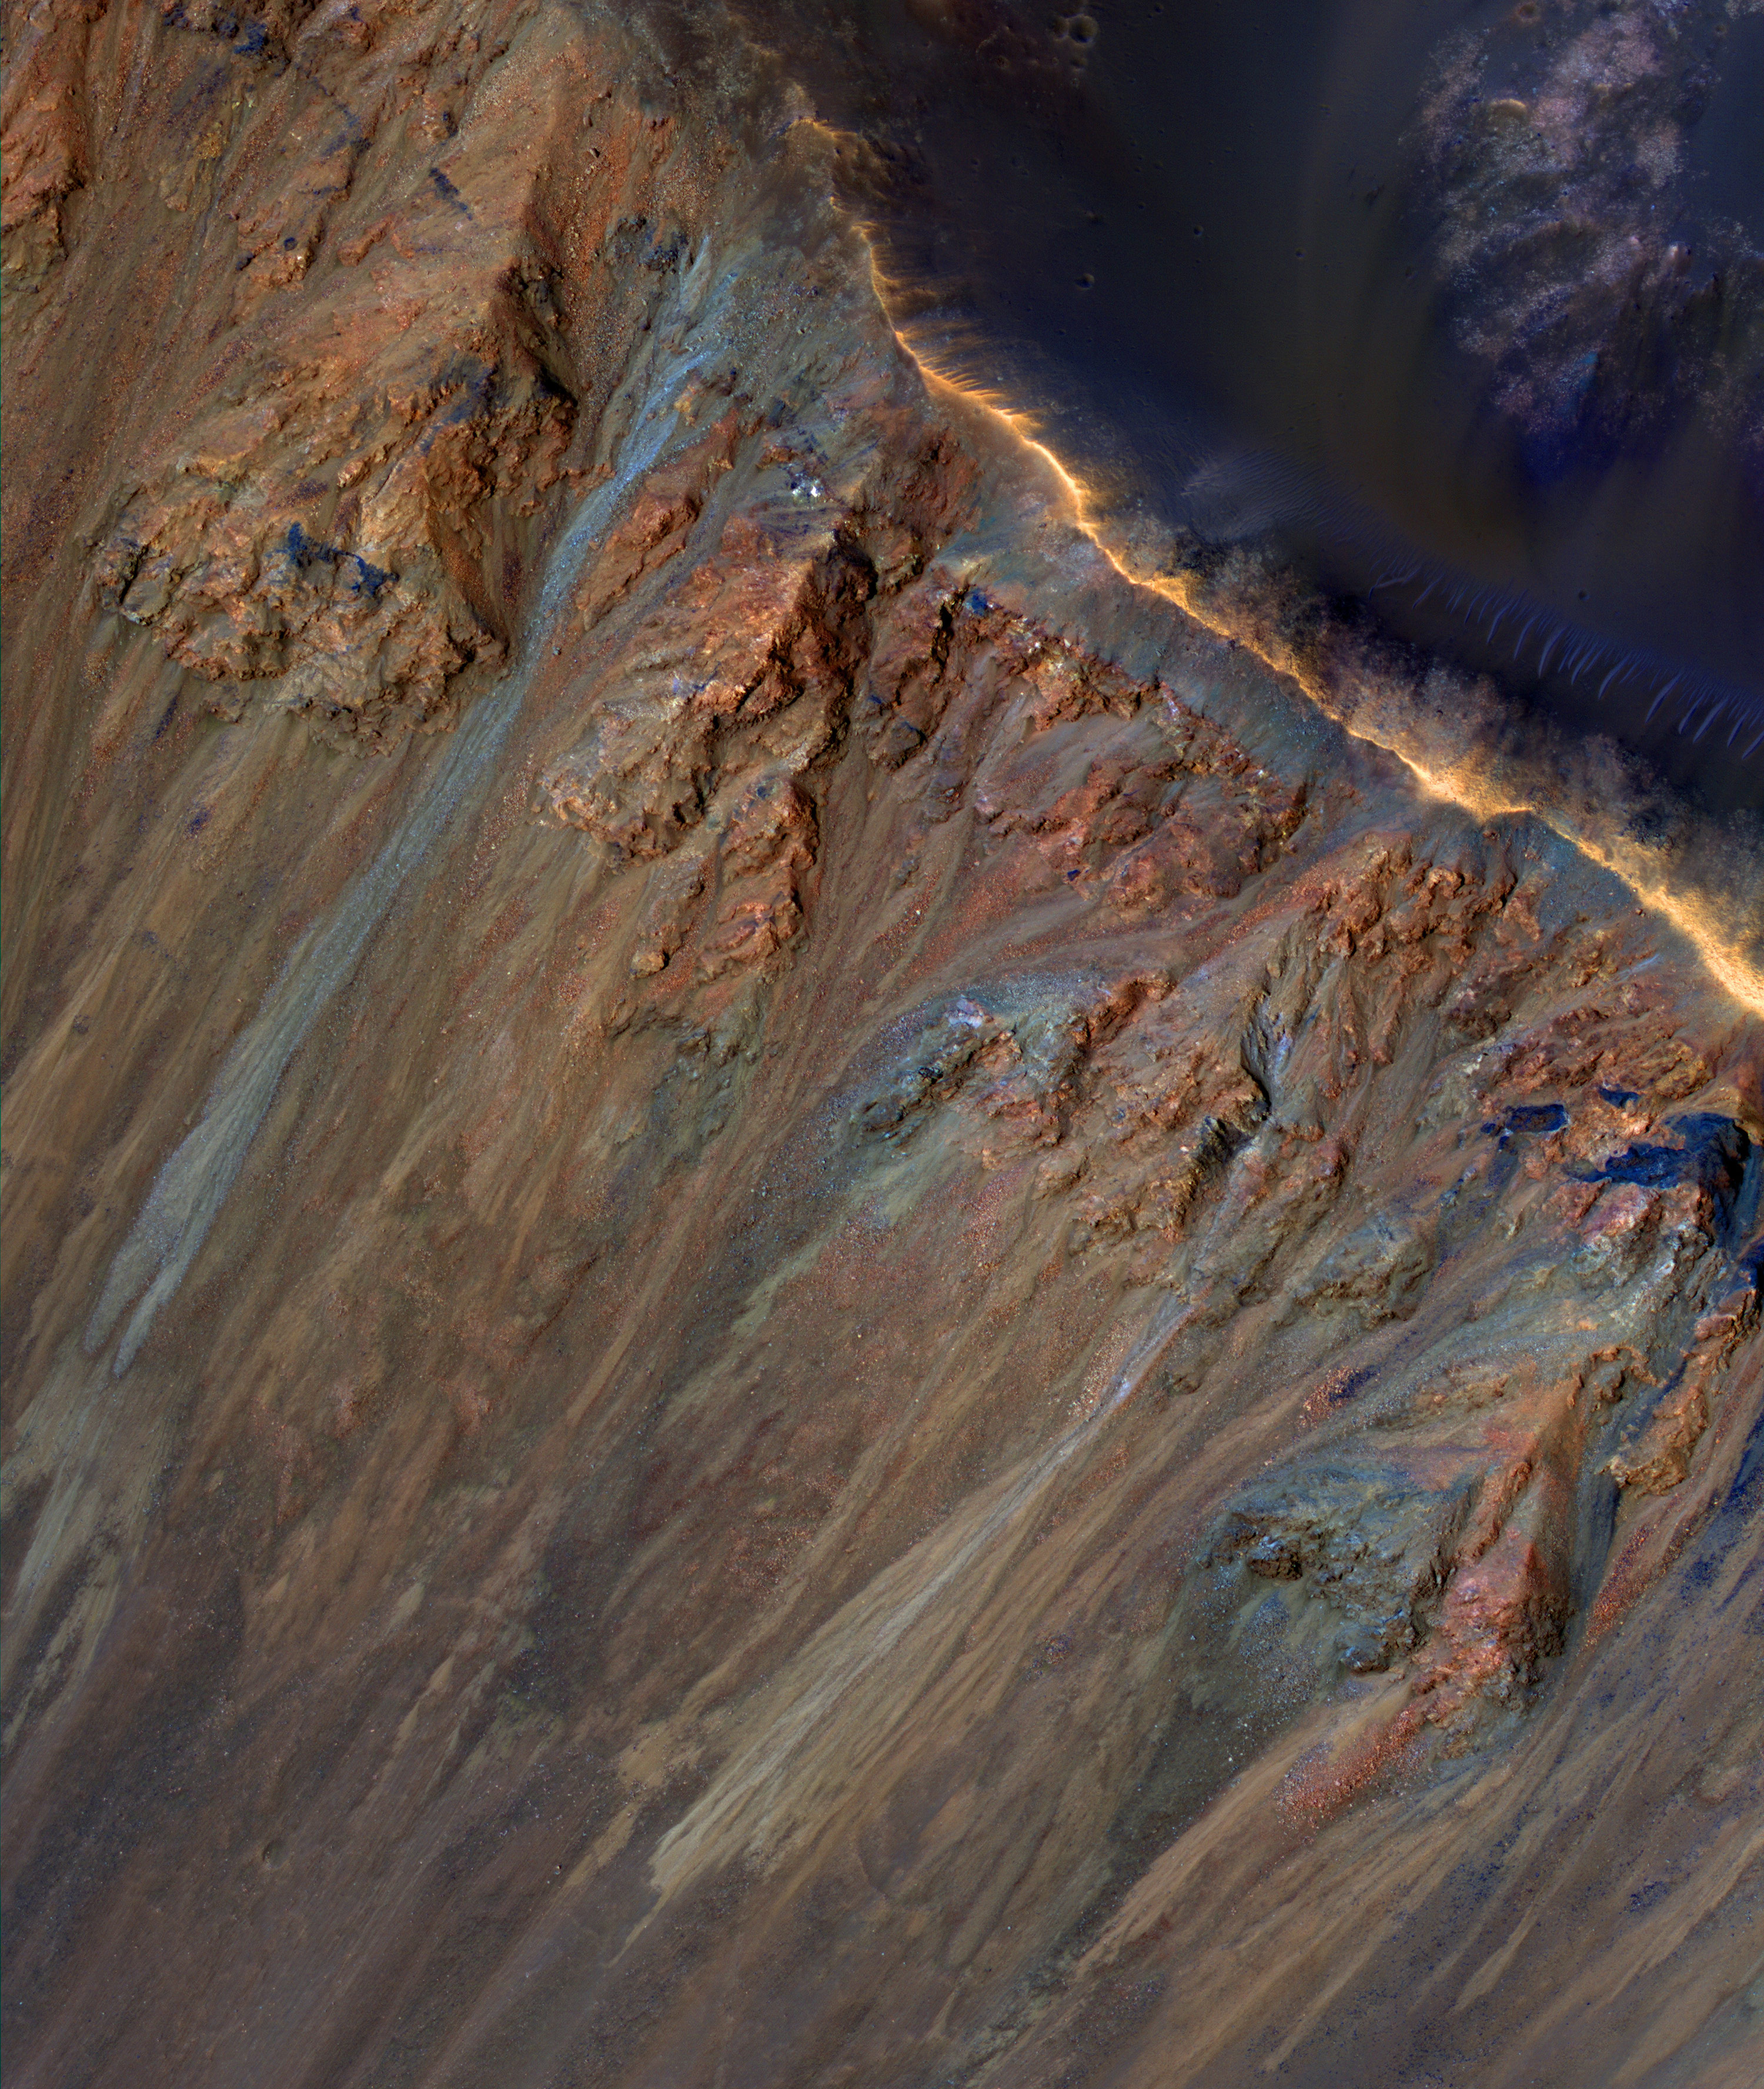 Martian landslides may be caused by melting ice and salt under the surface